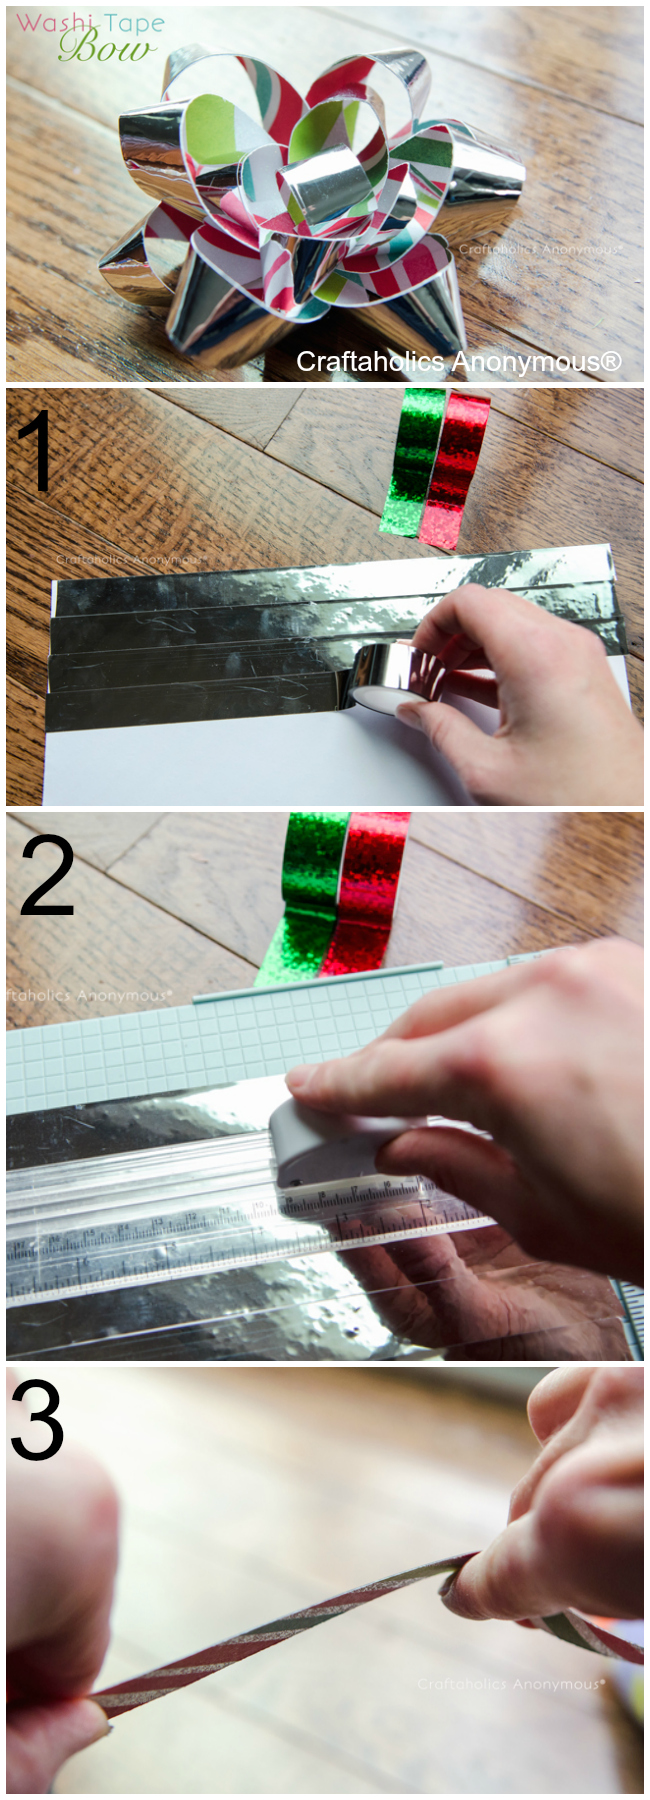 How to make Washi Tape bows